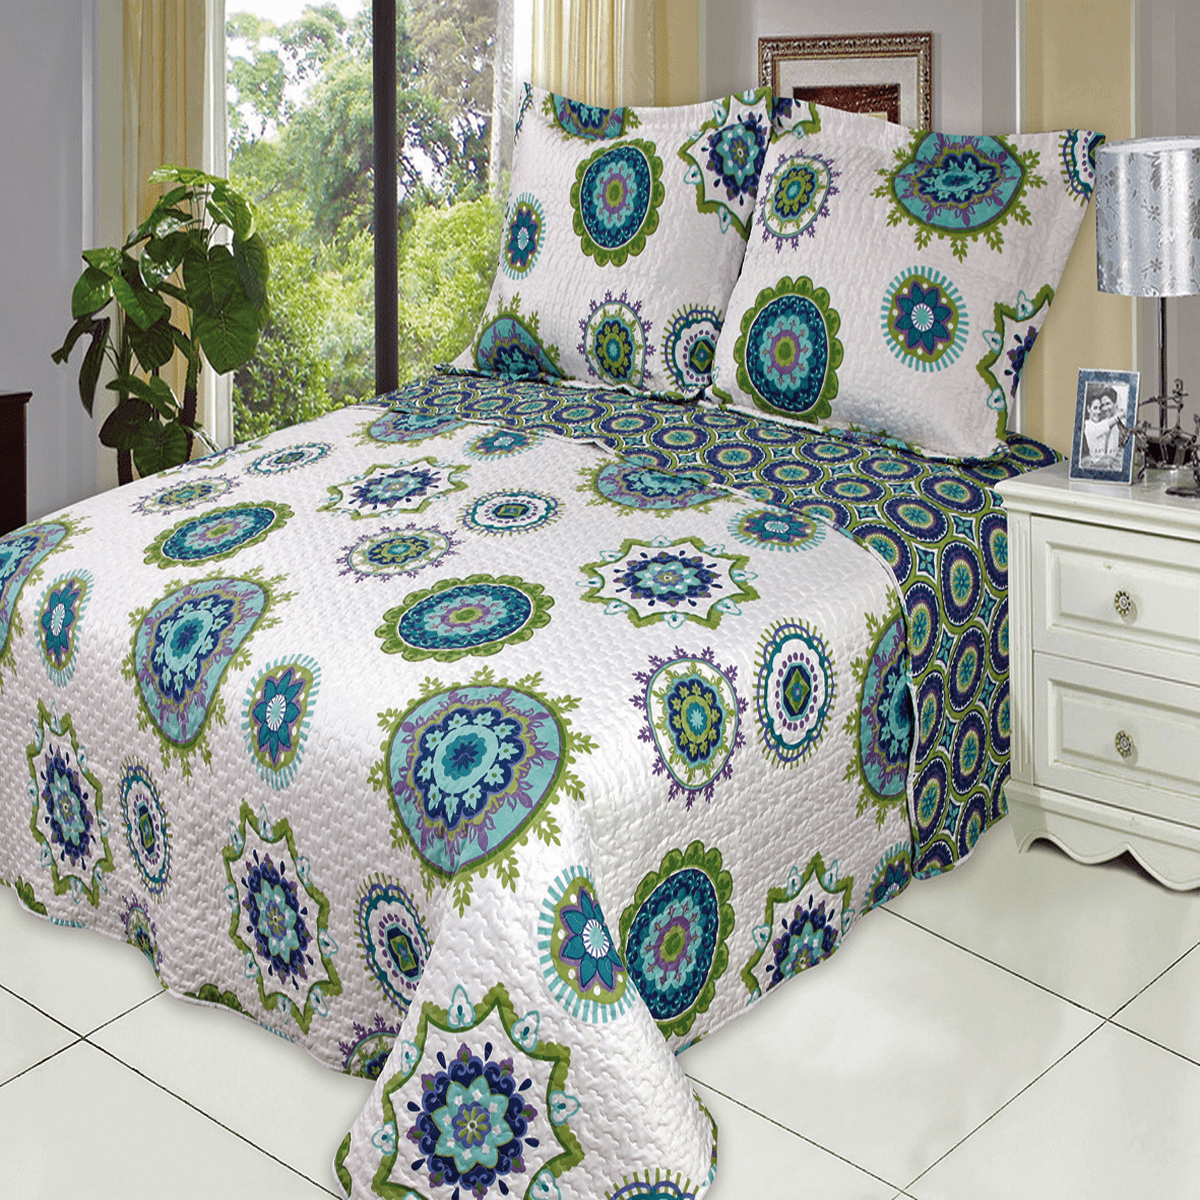 Julia Fashion Floral Design Coverlet Set Oversized Lightweight Reversible Quilt Bedding... by Royal Plaza Textiles, Inc.